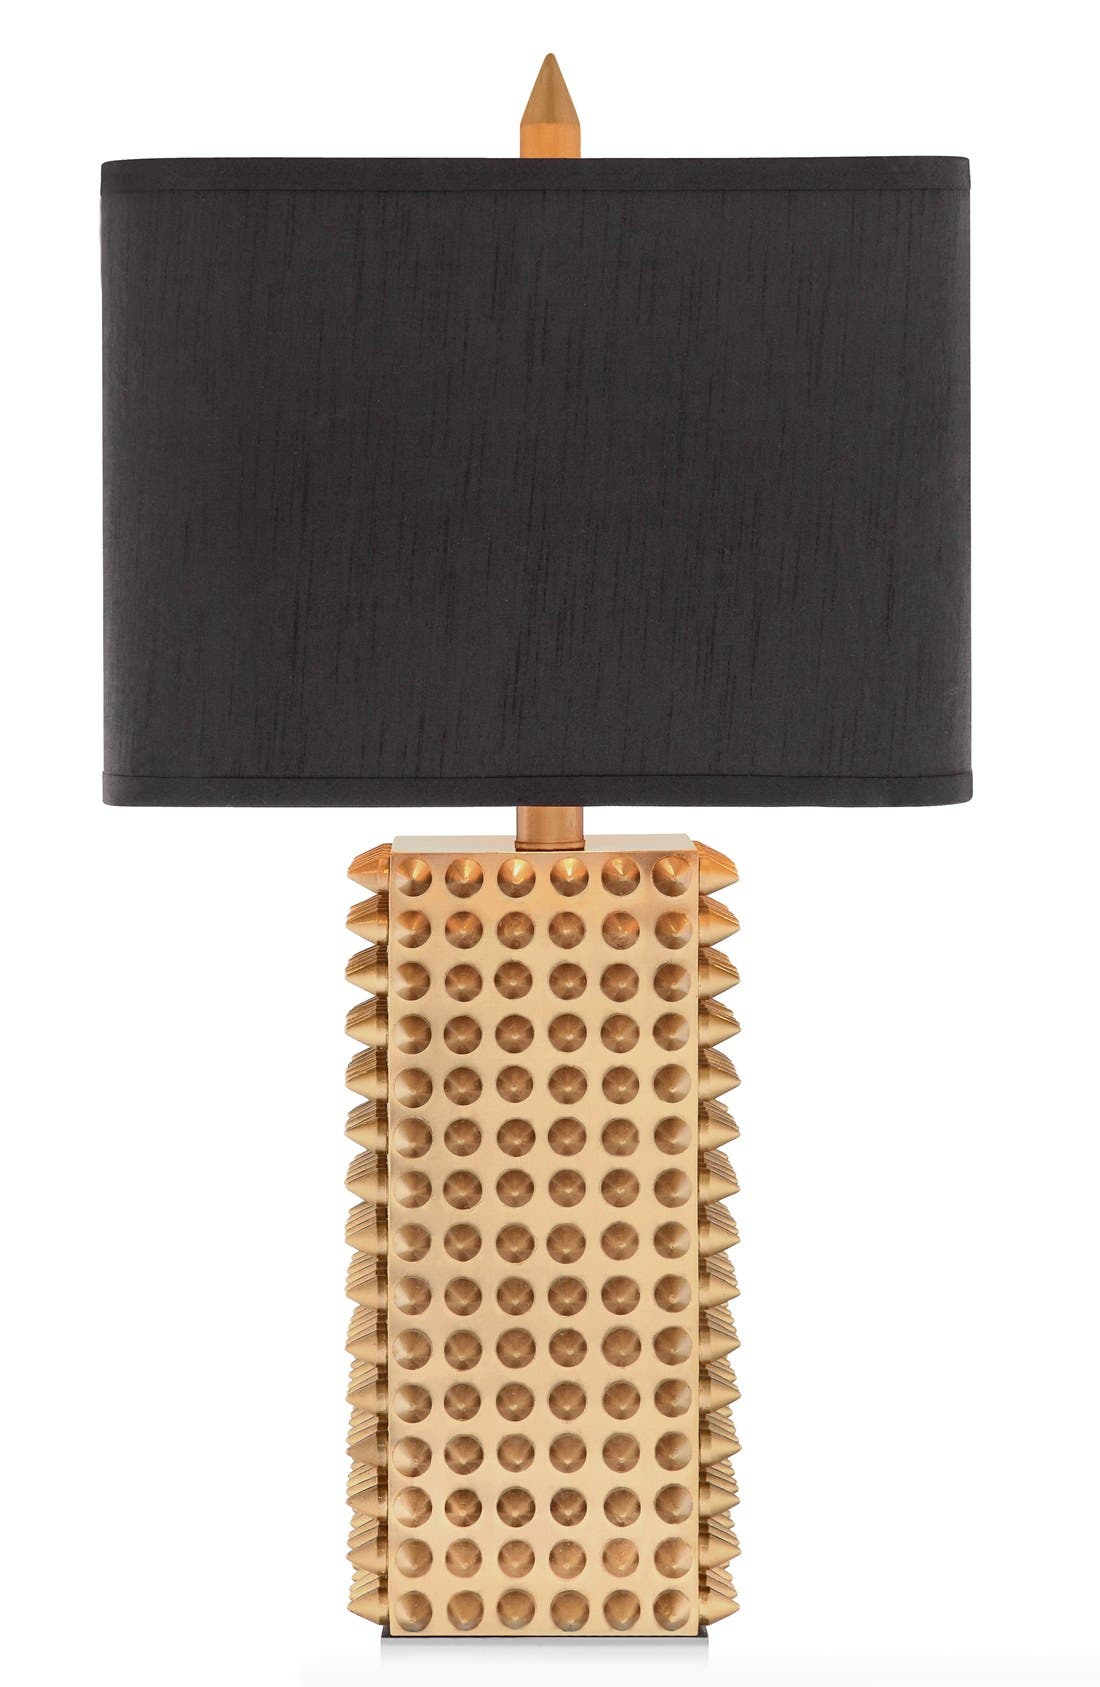 Goldtone Spiked Square Table Lamp,                             Main thumbnail 1, color,                             710